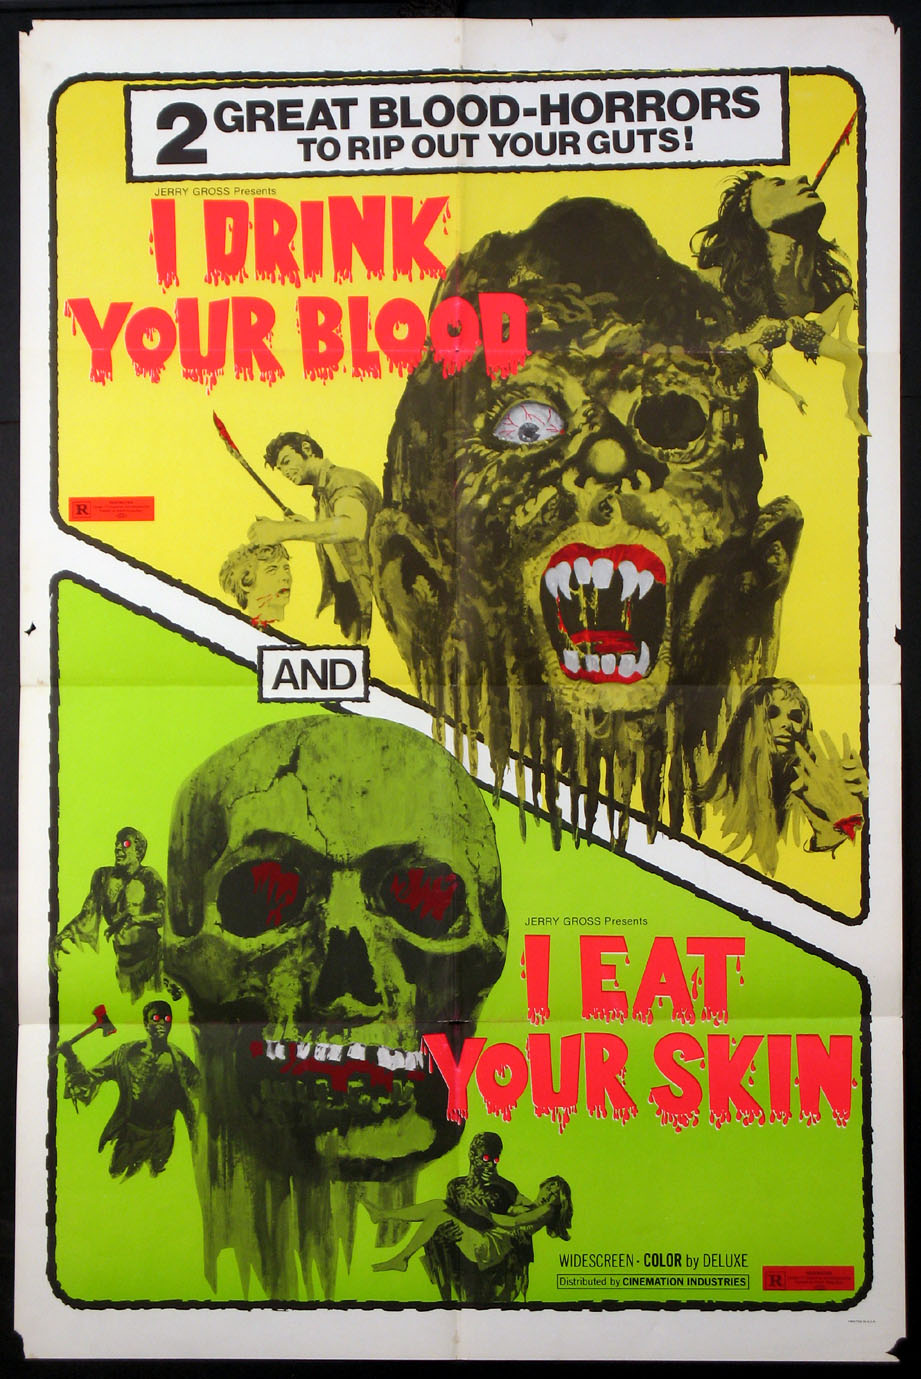 I DRINK YOUR BLOOD, I EAT YOUR SKIN @ FilmPosters.com